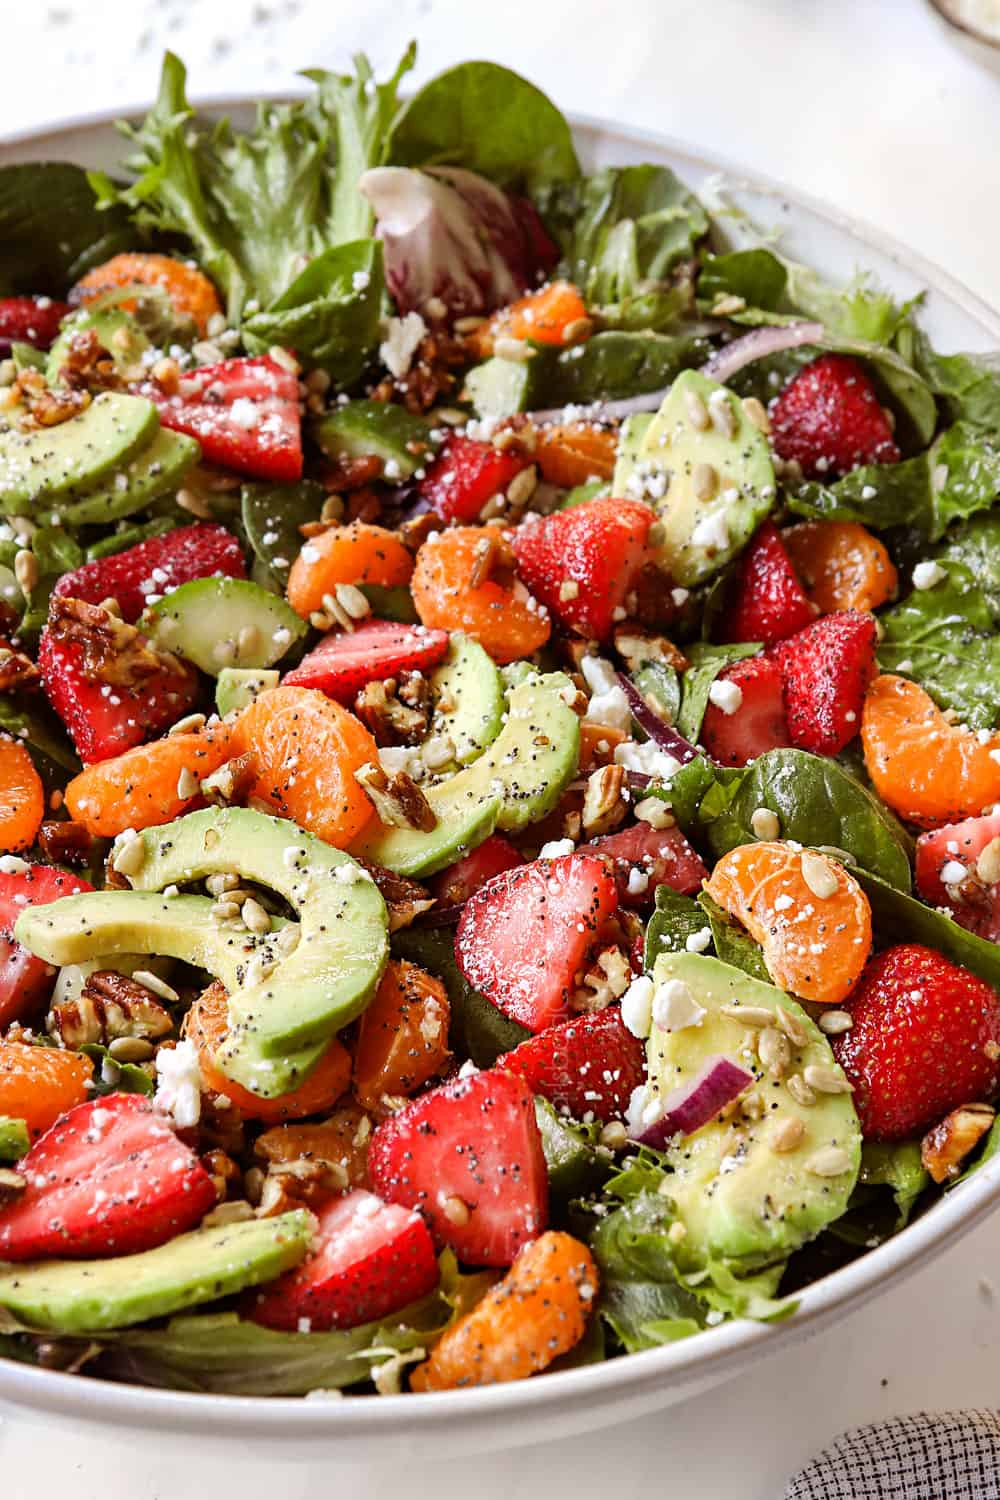 strawberry spinach salad recipe in a white bowl with candied nuts, feta and red onions